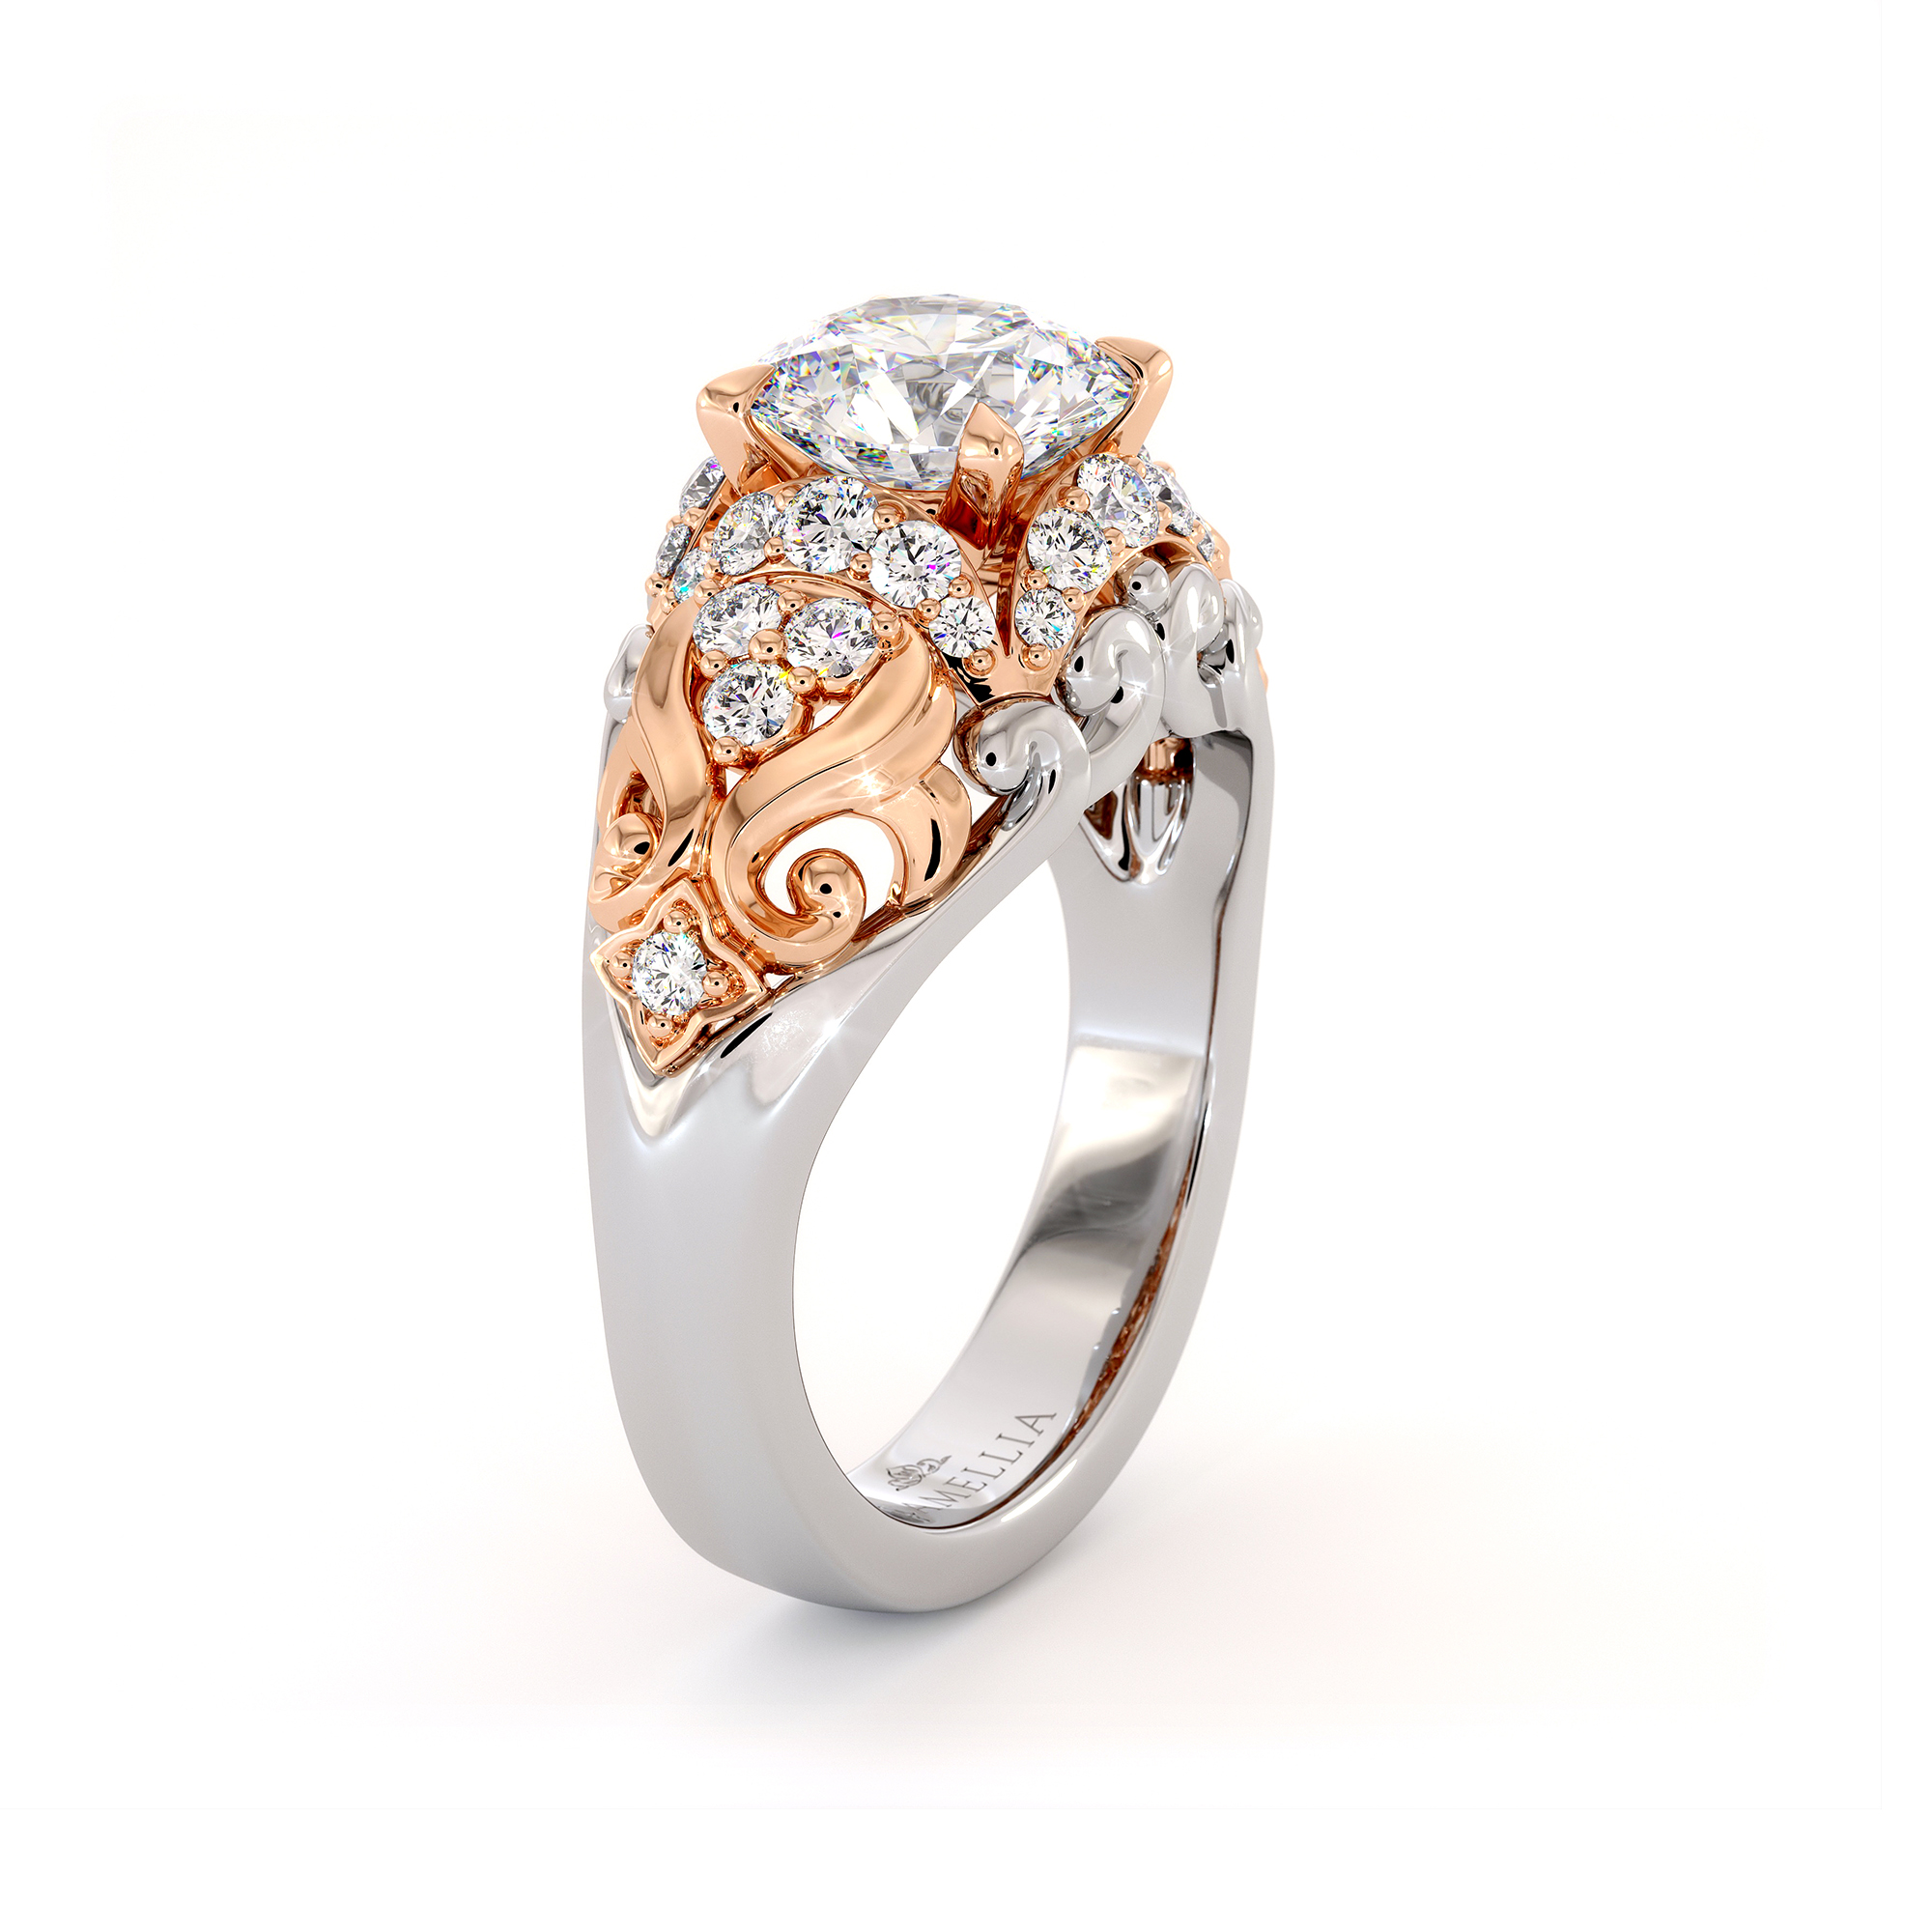 Regally Diamonds Halo Engagement Ring Sea Waves Ring Round Moissanite Ring Unique 2 Tone Gold Engagement Ring